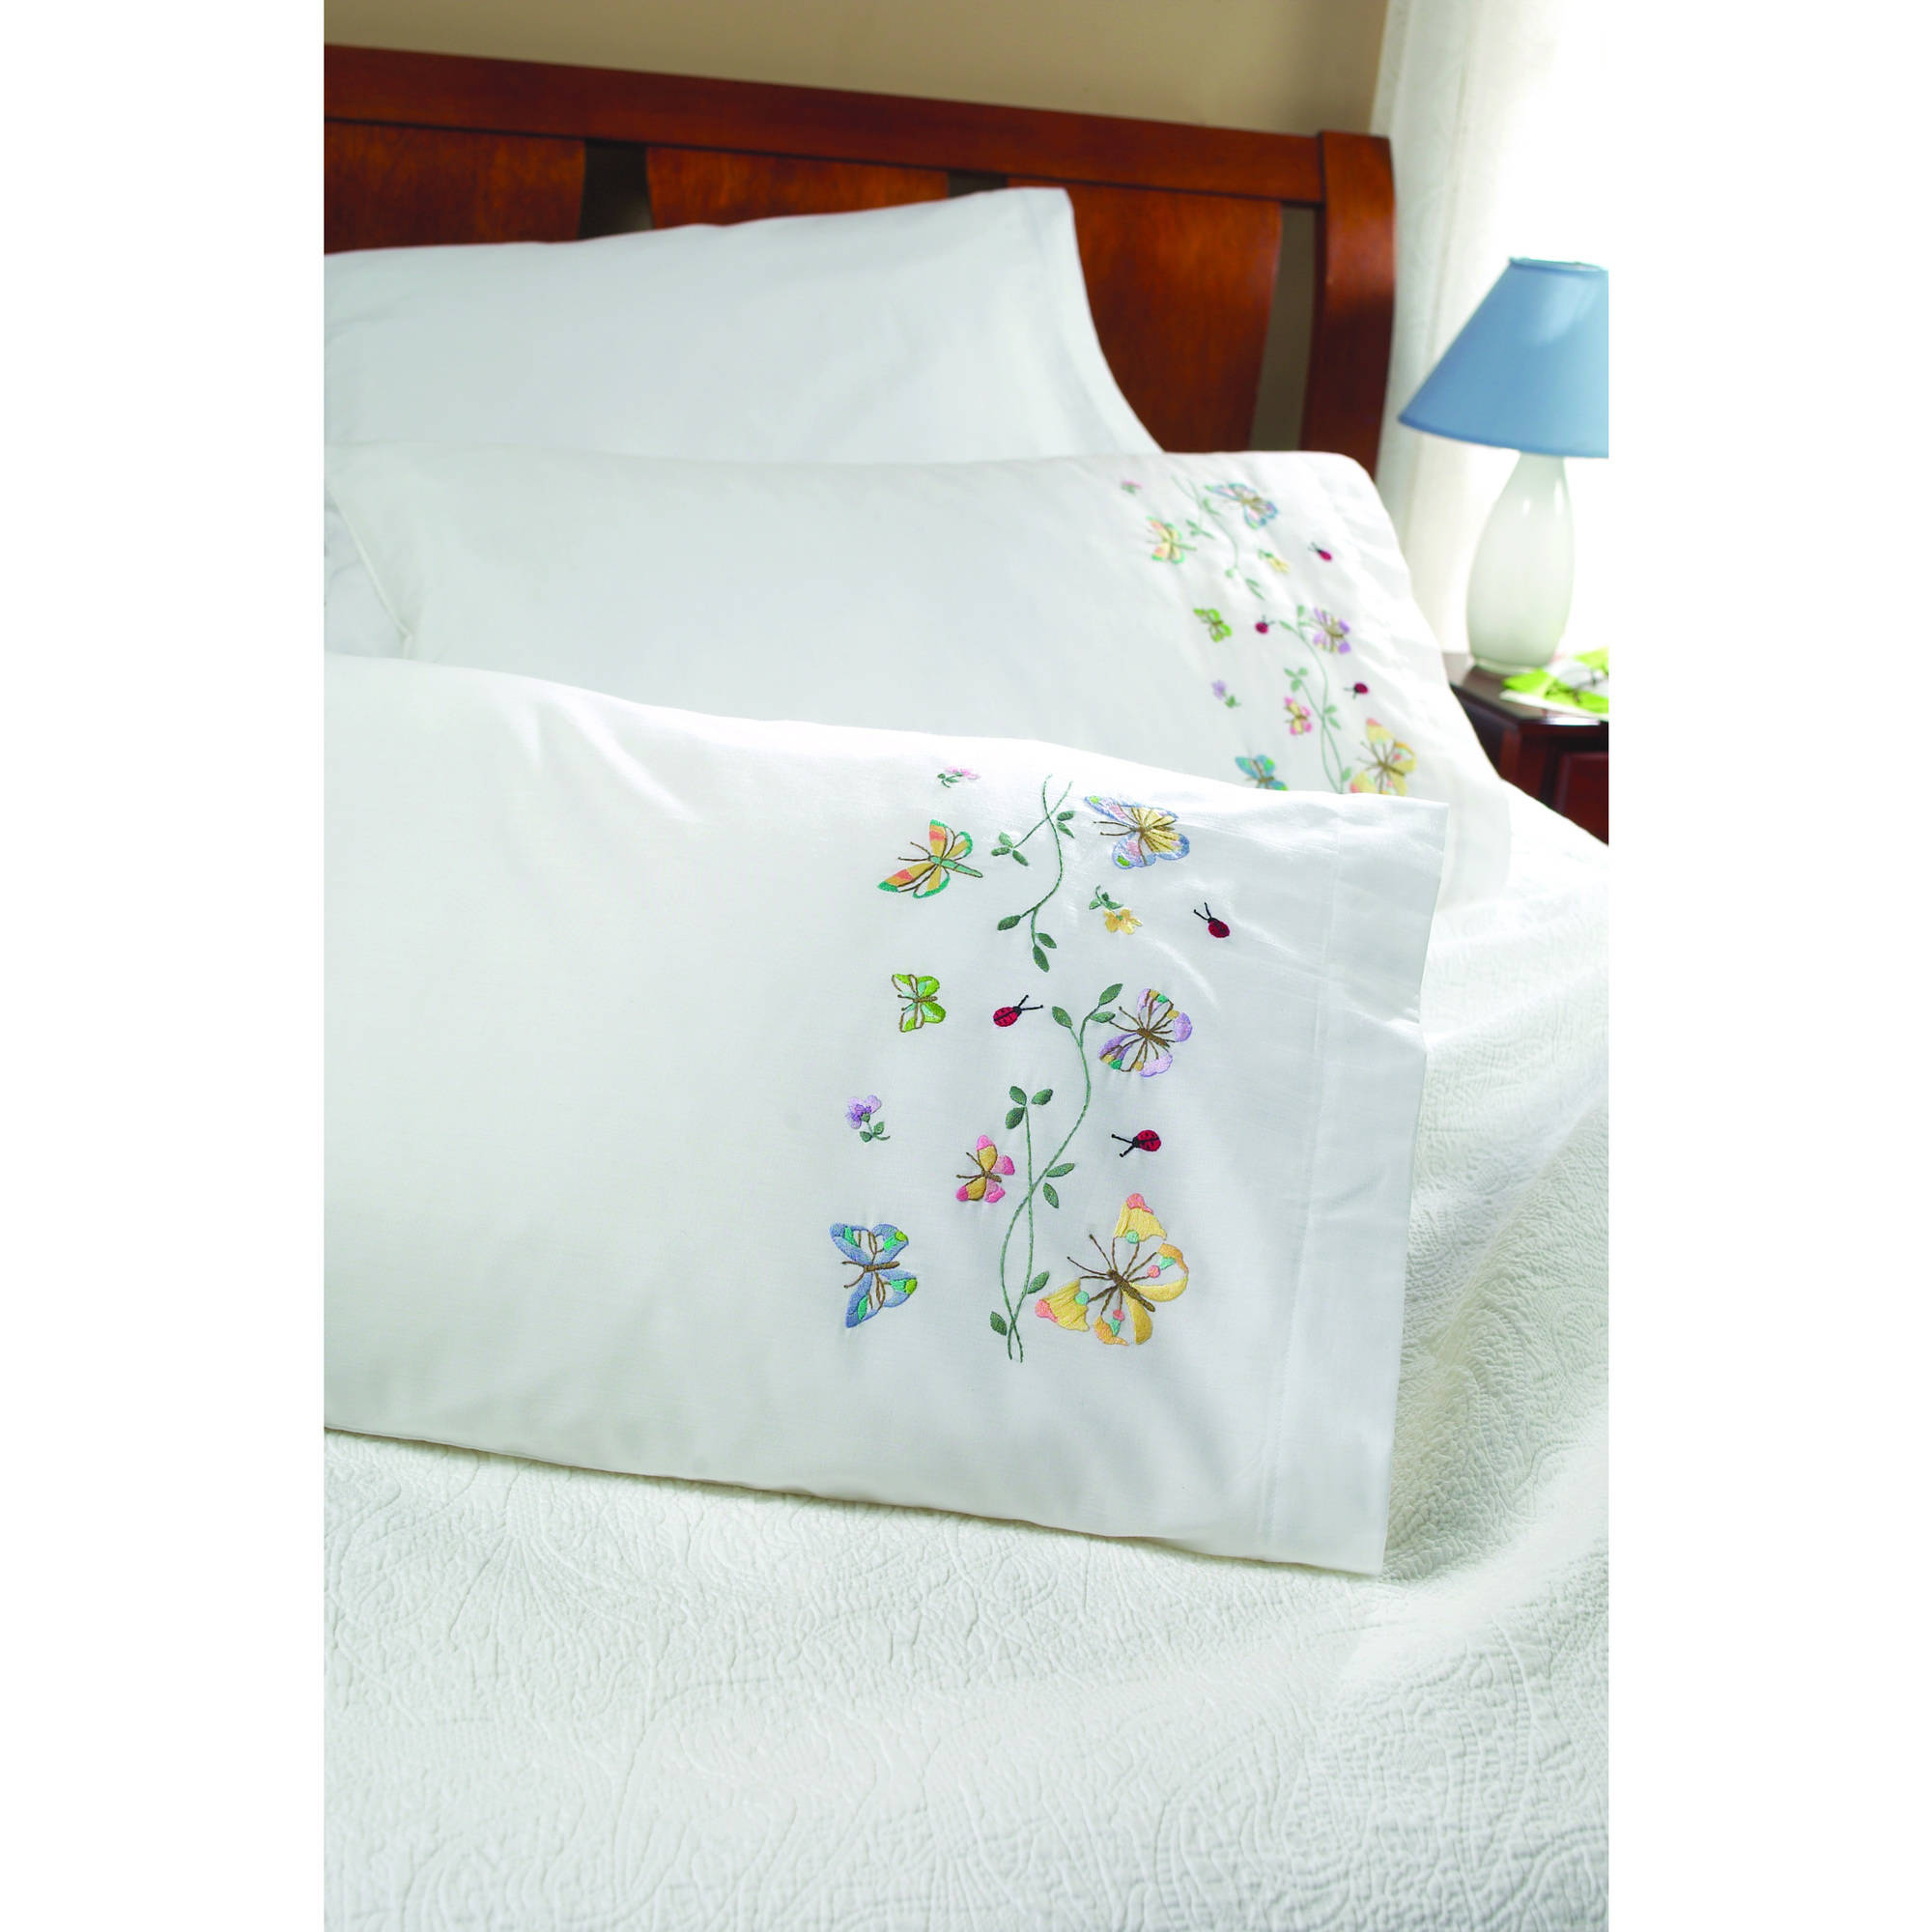 "Bucilla   Stamped Cross Stitch and Embroidery Pillowcase Pair Kit by Plaid, Butterflies   in Flight, Set of 2, 30"" x 20"" each"